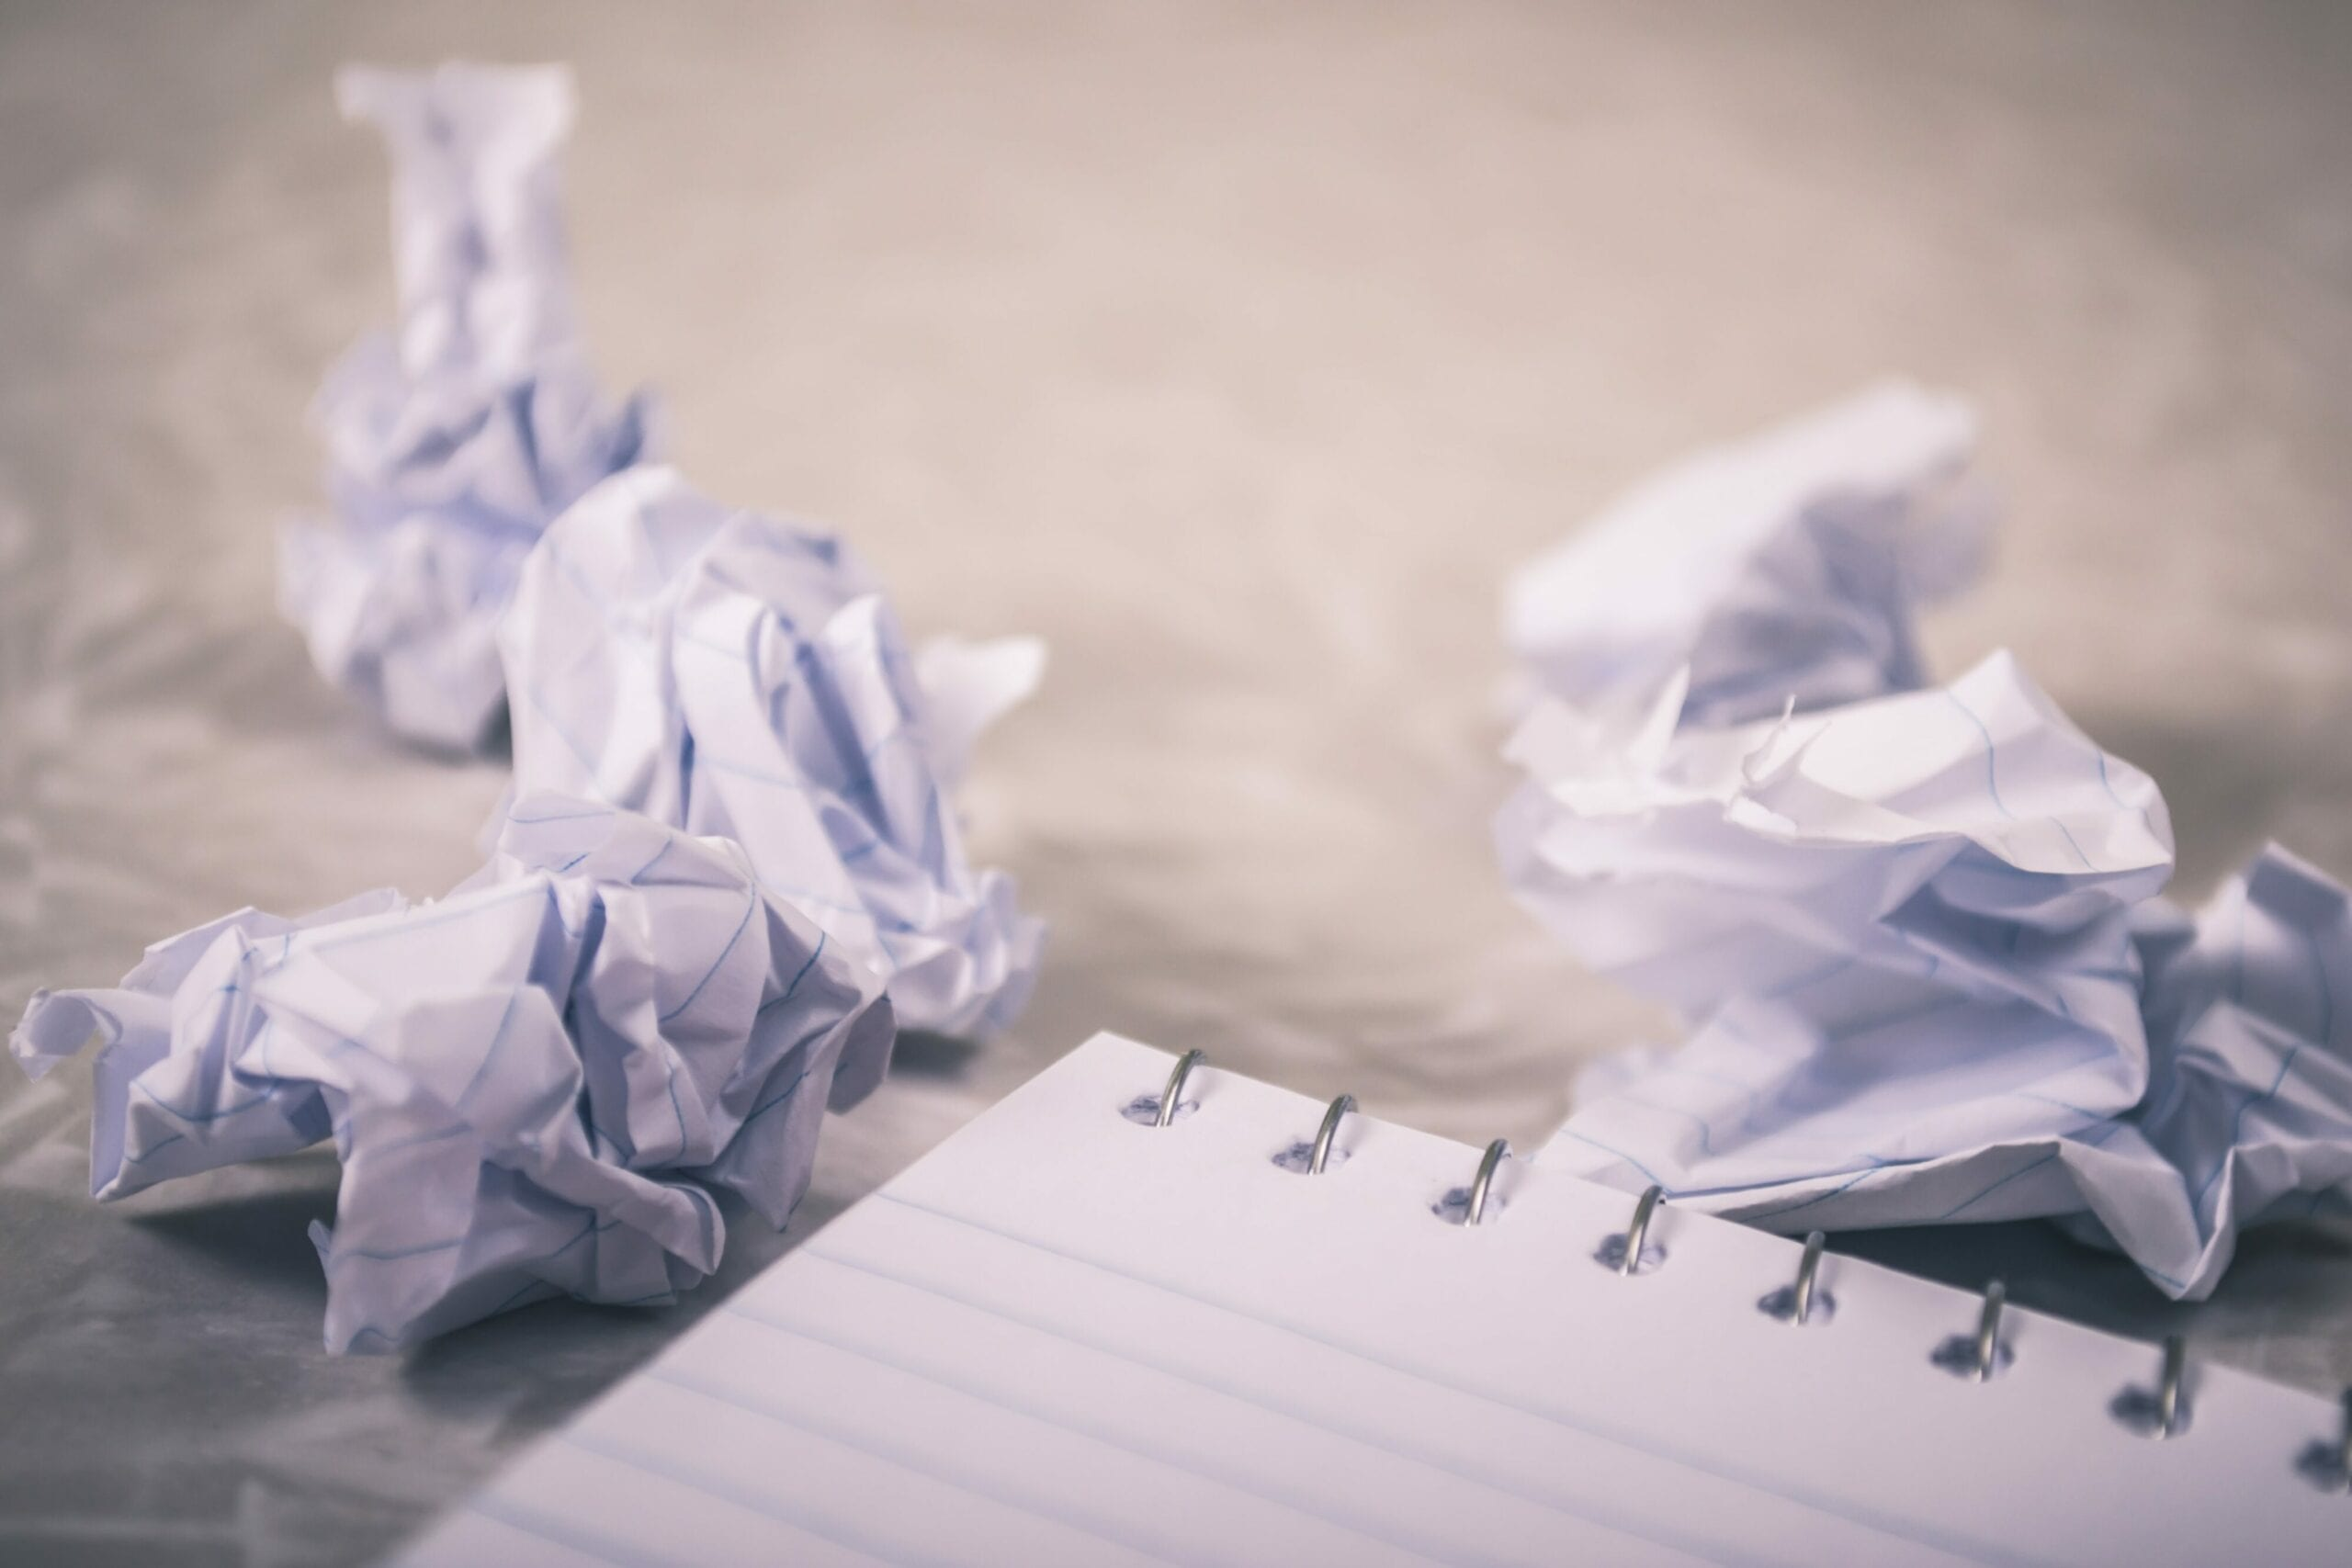 A few crumpled up pieces of paper next to an empty notebook